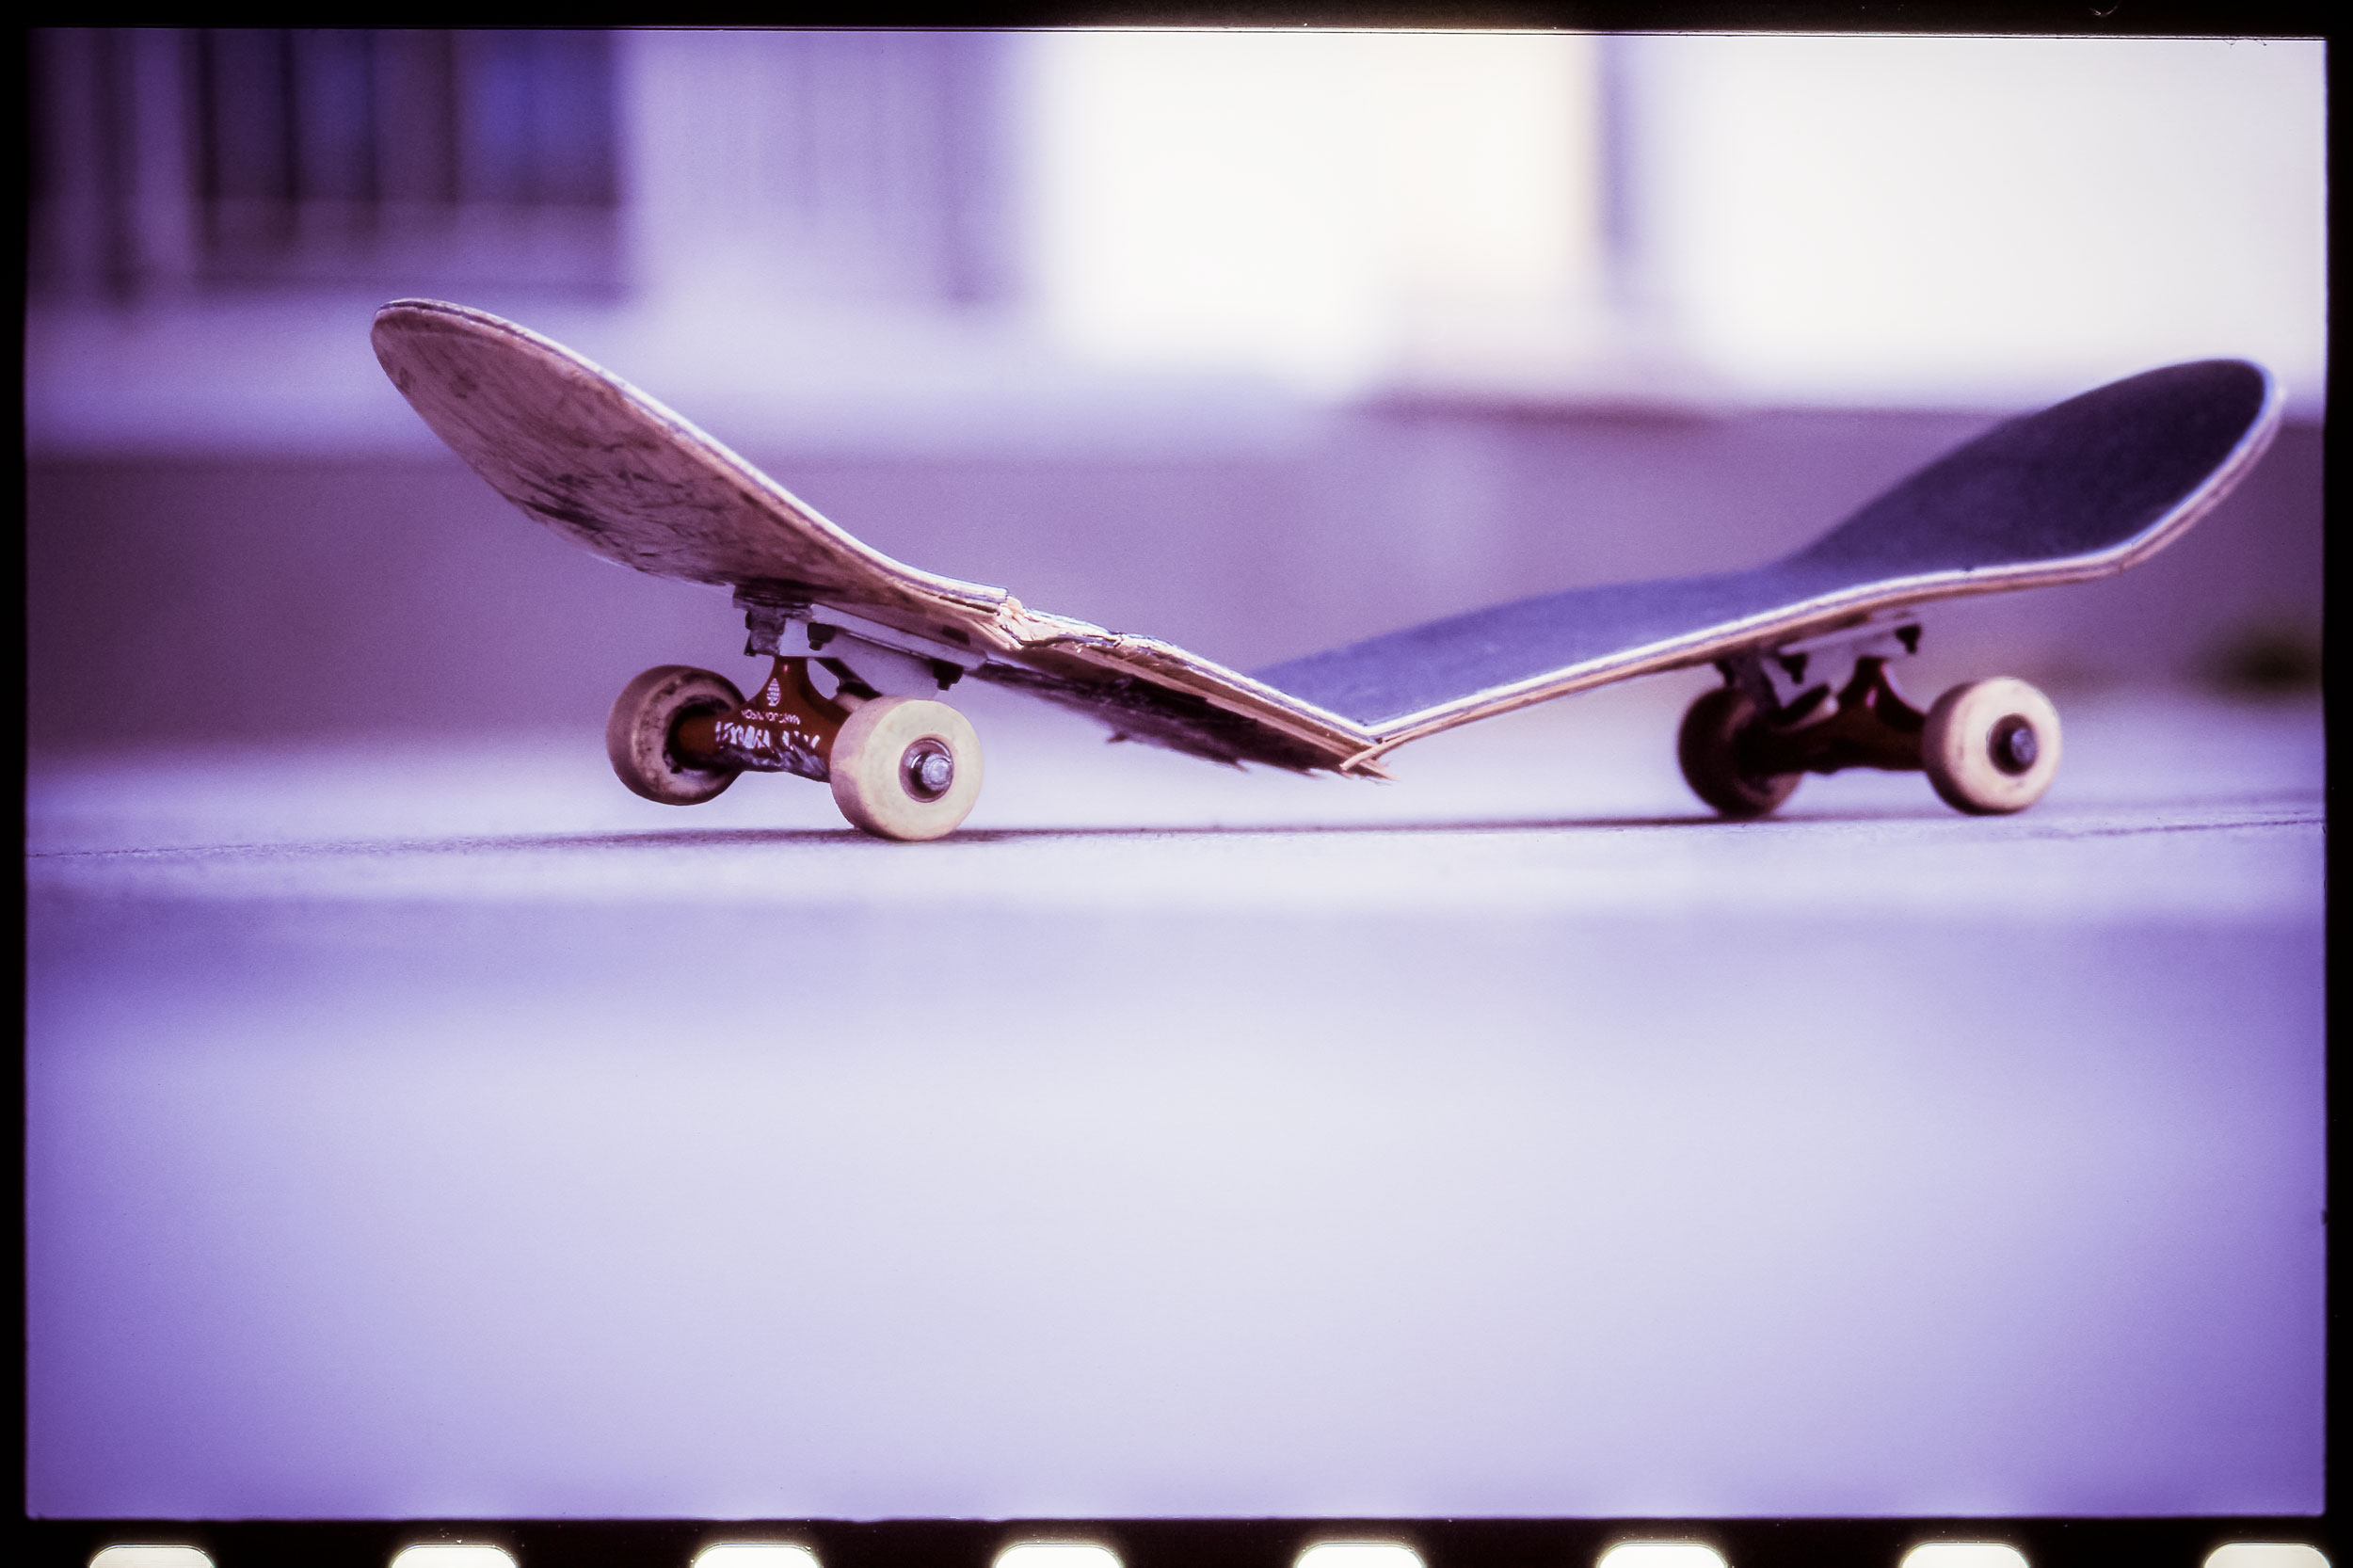 Broken Skateboard, Analogfotografie, Willi Nothers